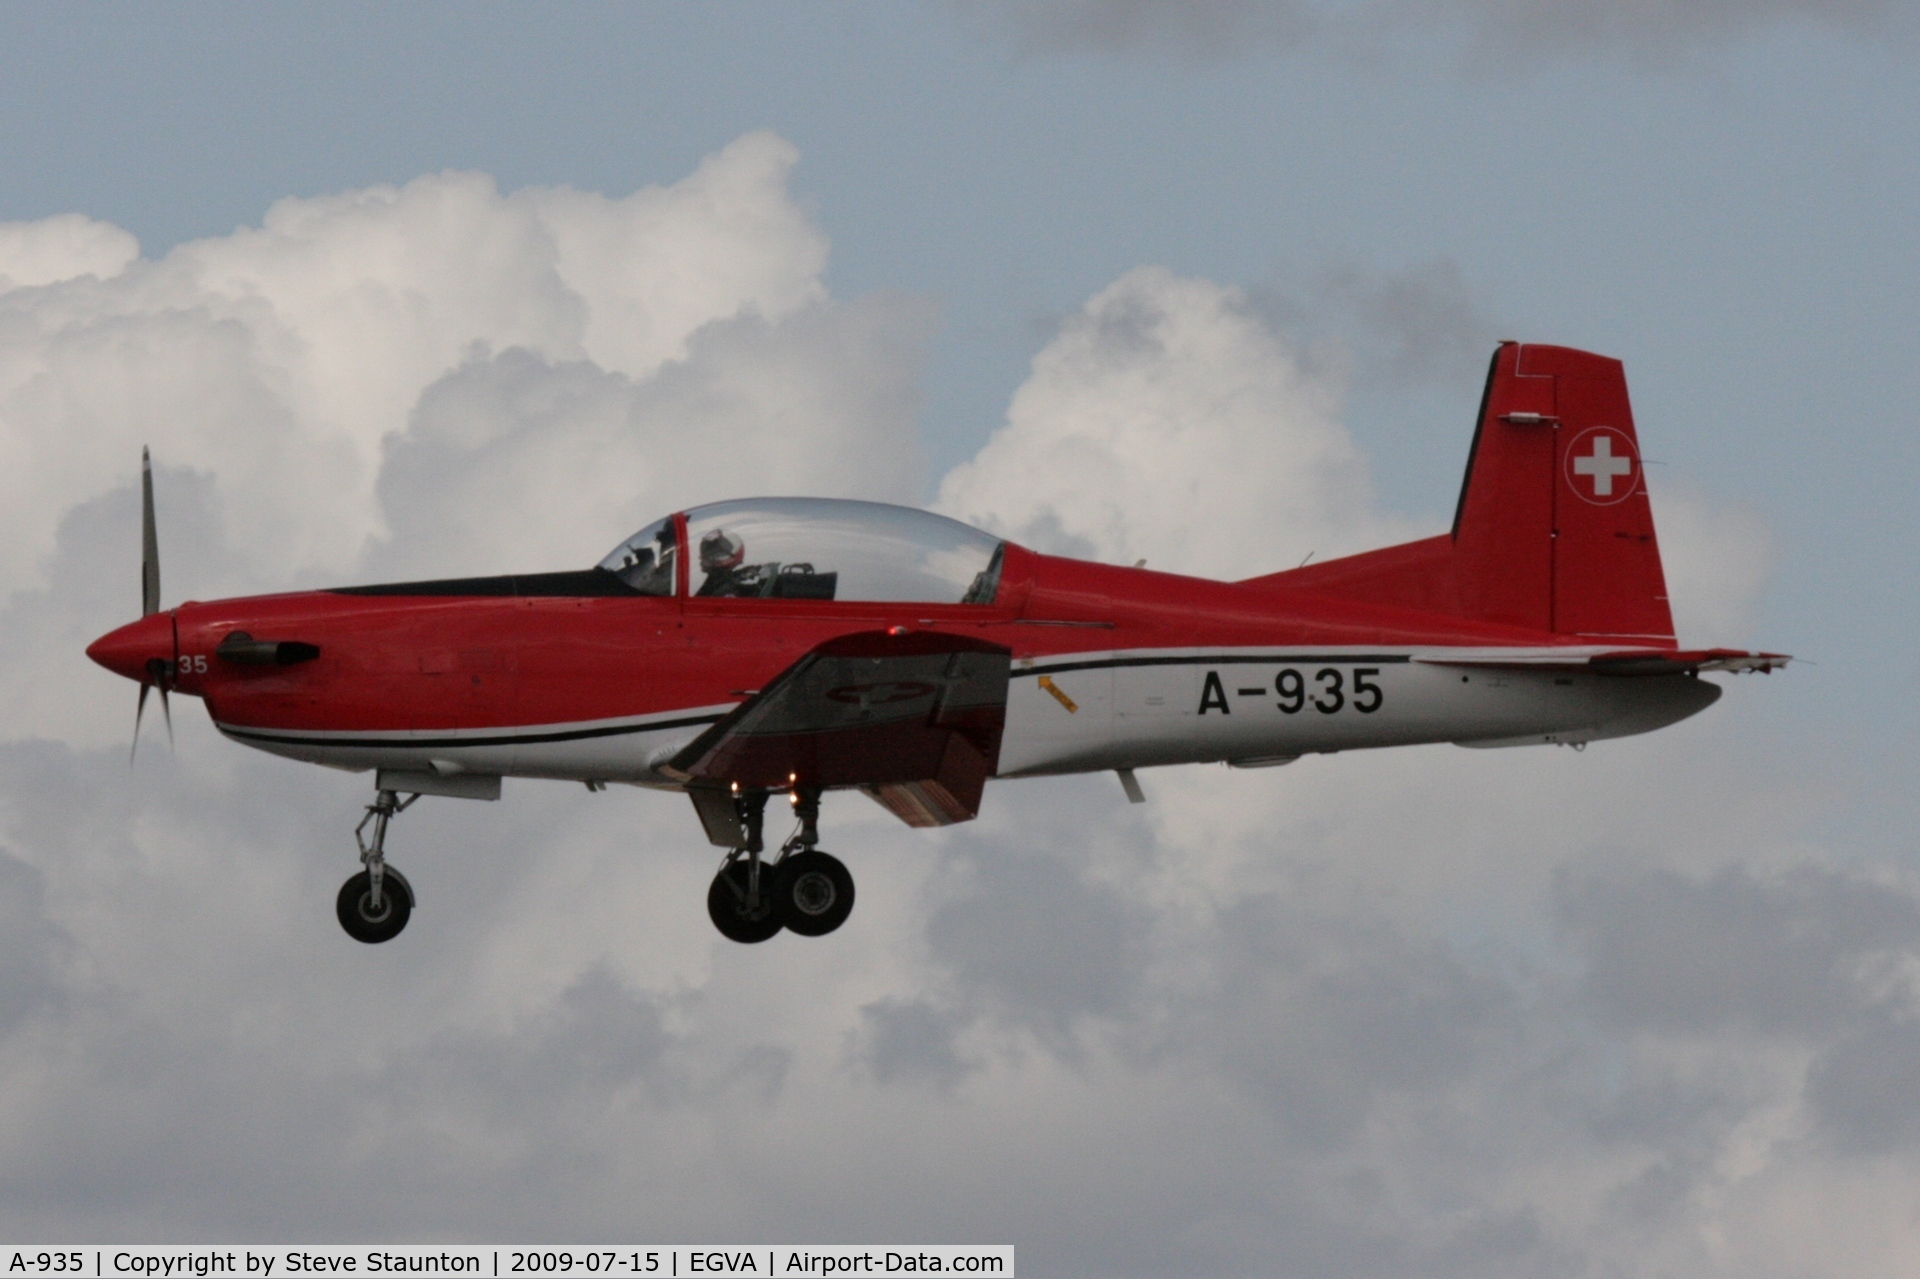 A-935, 1983 Pilatus PC-7 Turbo Trainer C/N 343, Taken at the Royal International Air Tattoo 2009